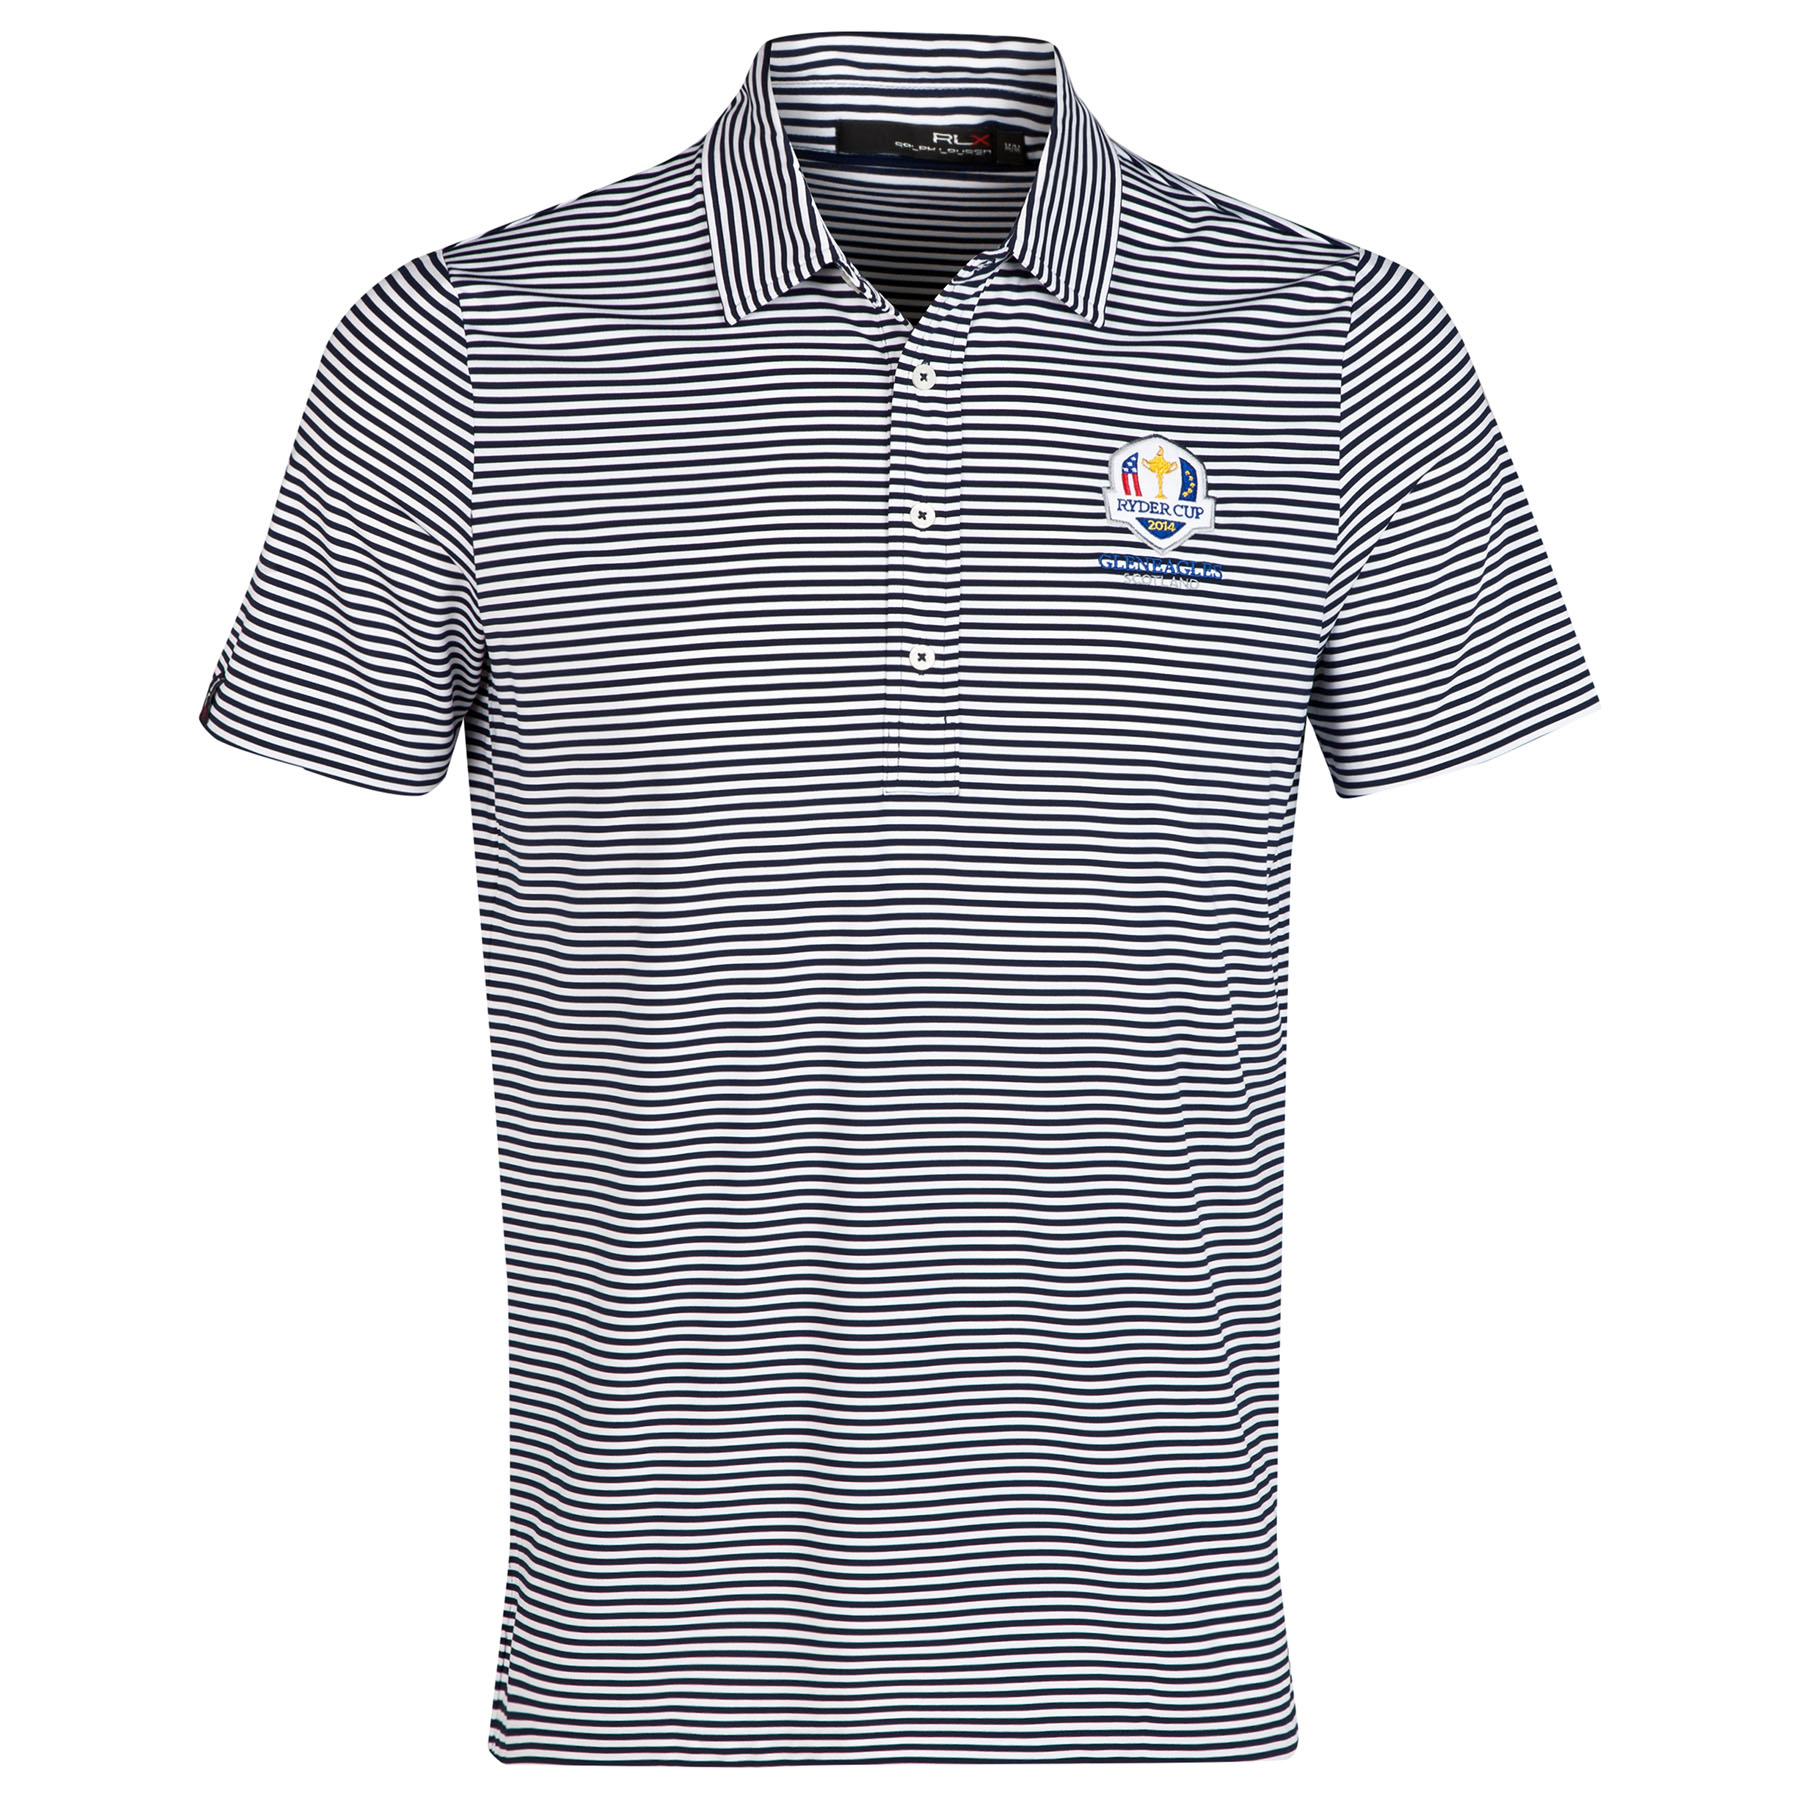 The 2014 Ryder Cup Ralph Lauren Striped Airflow Polo - Pure White/French Navy